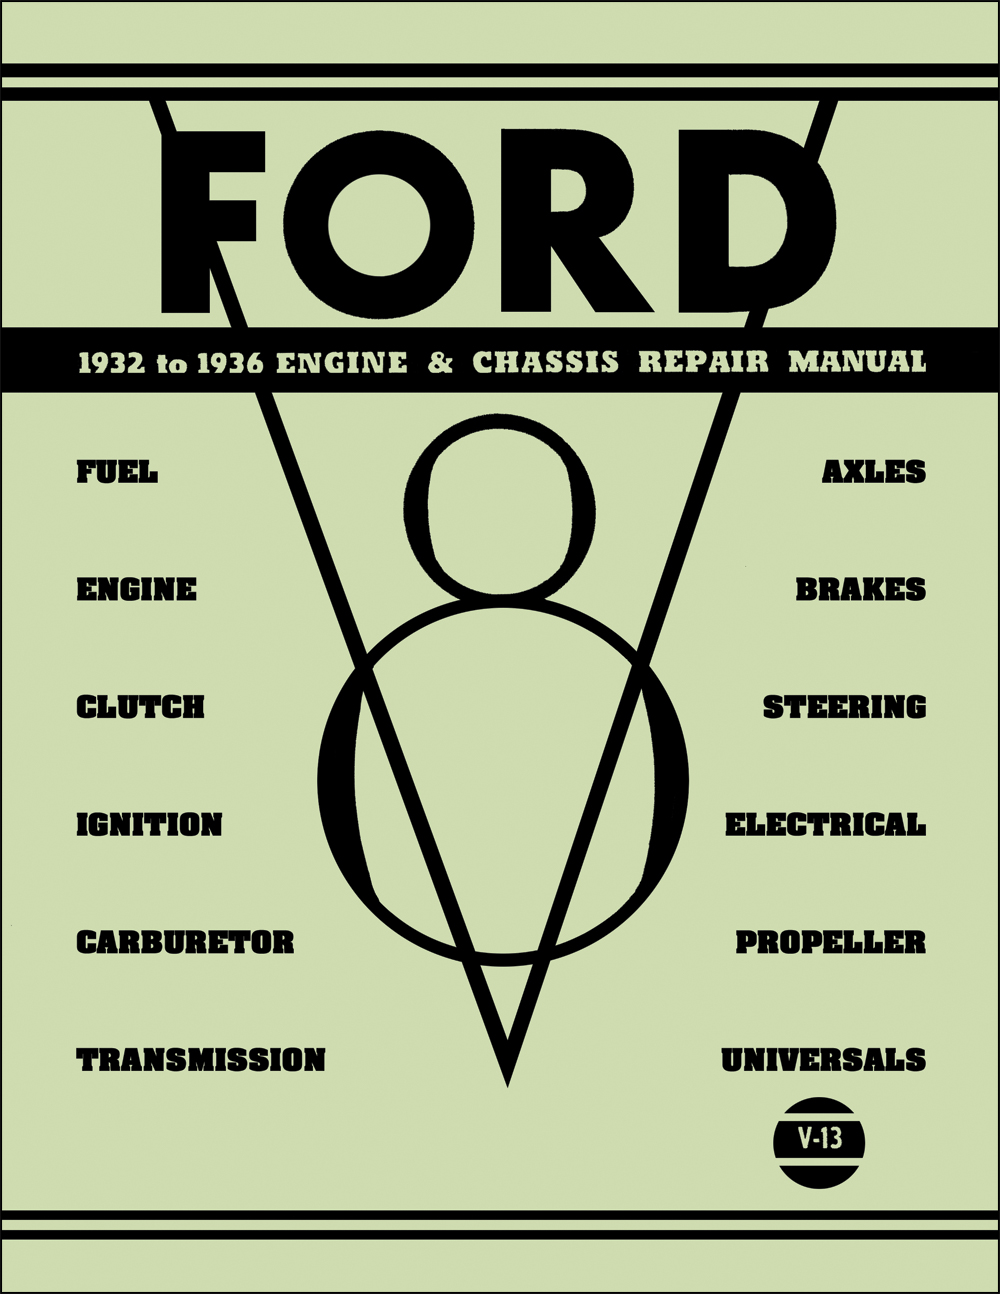 1932-1936 Ford Engine & Chassis Repair Manual Reprint